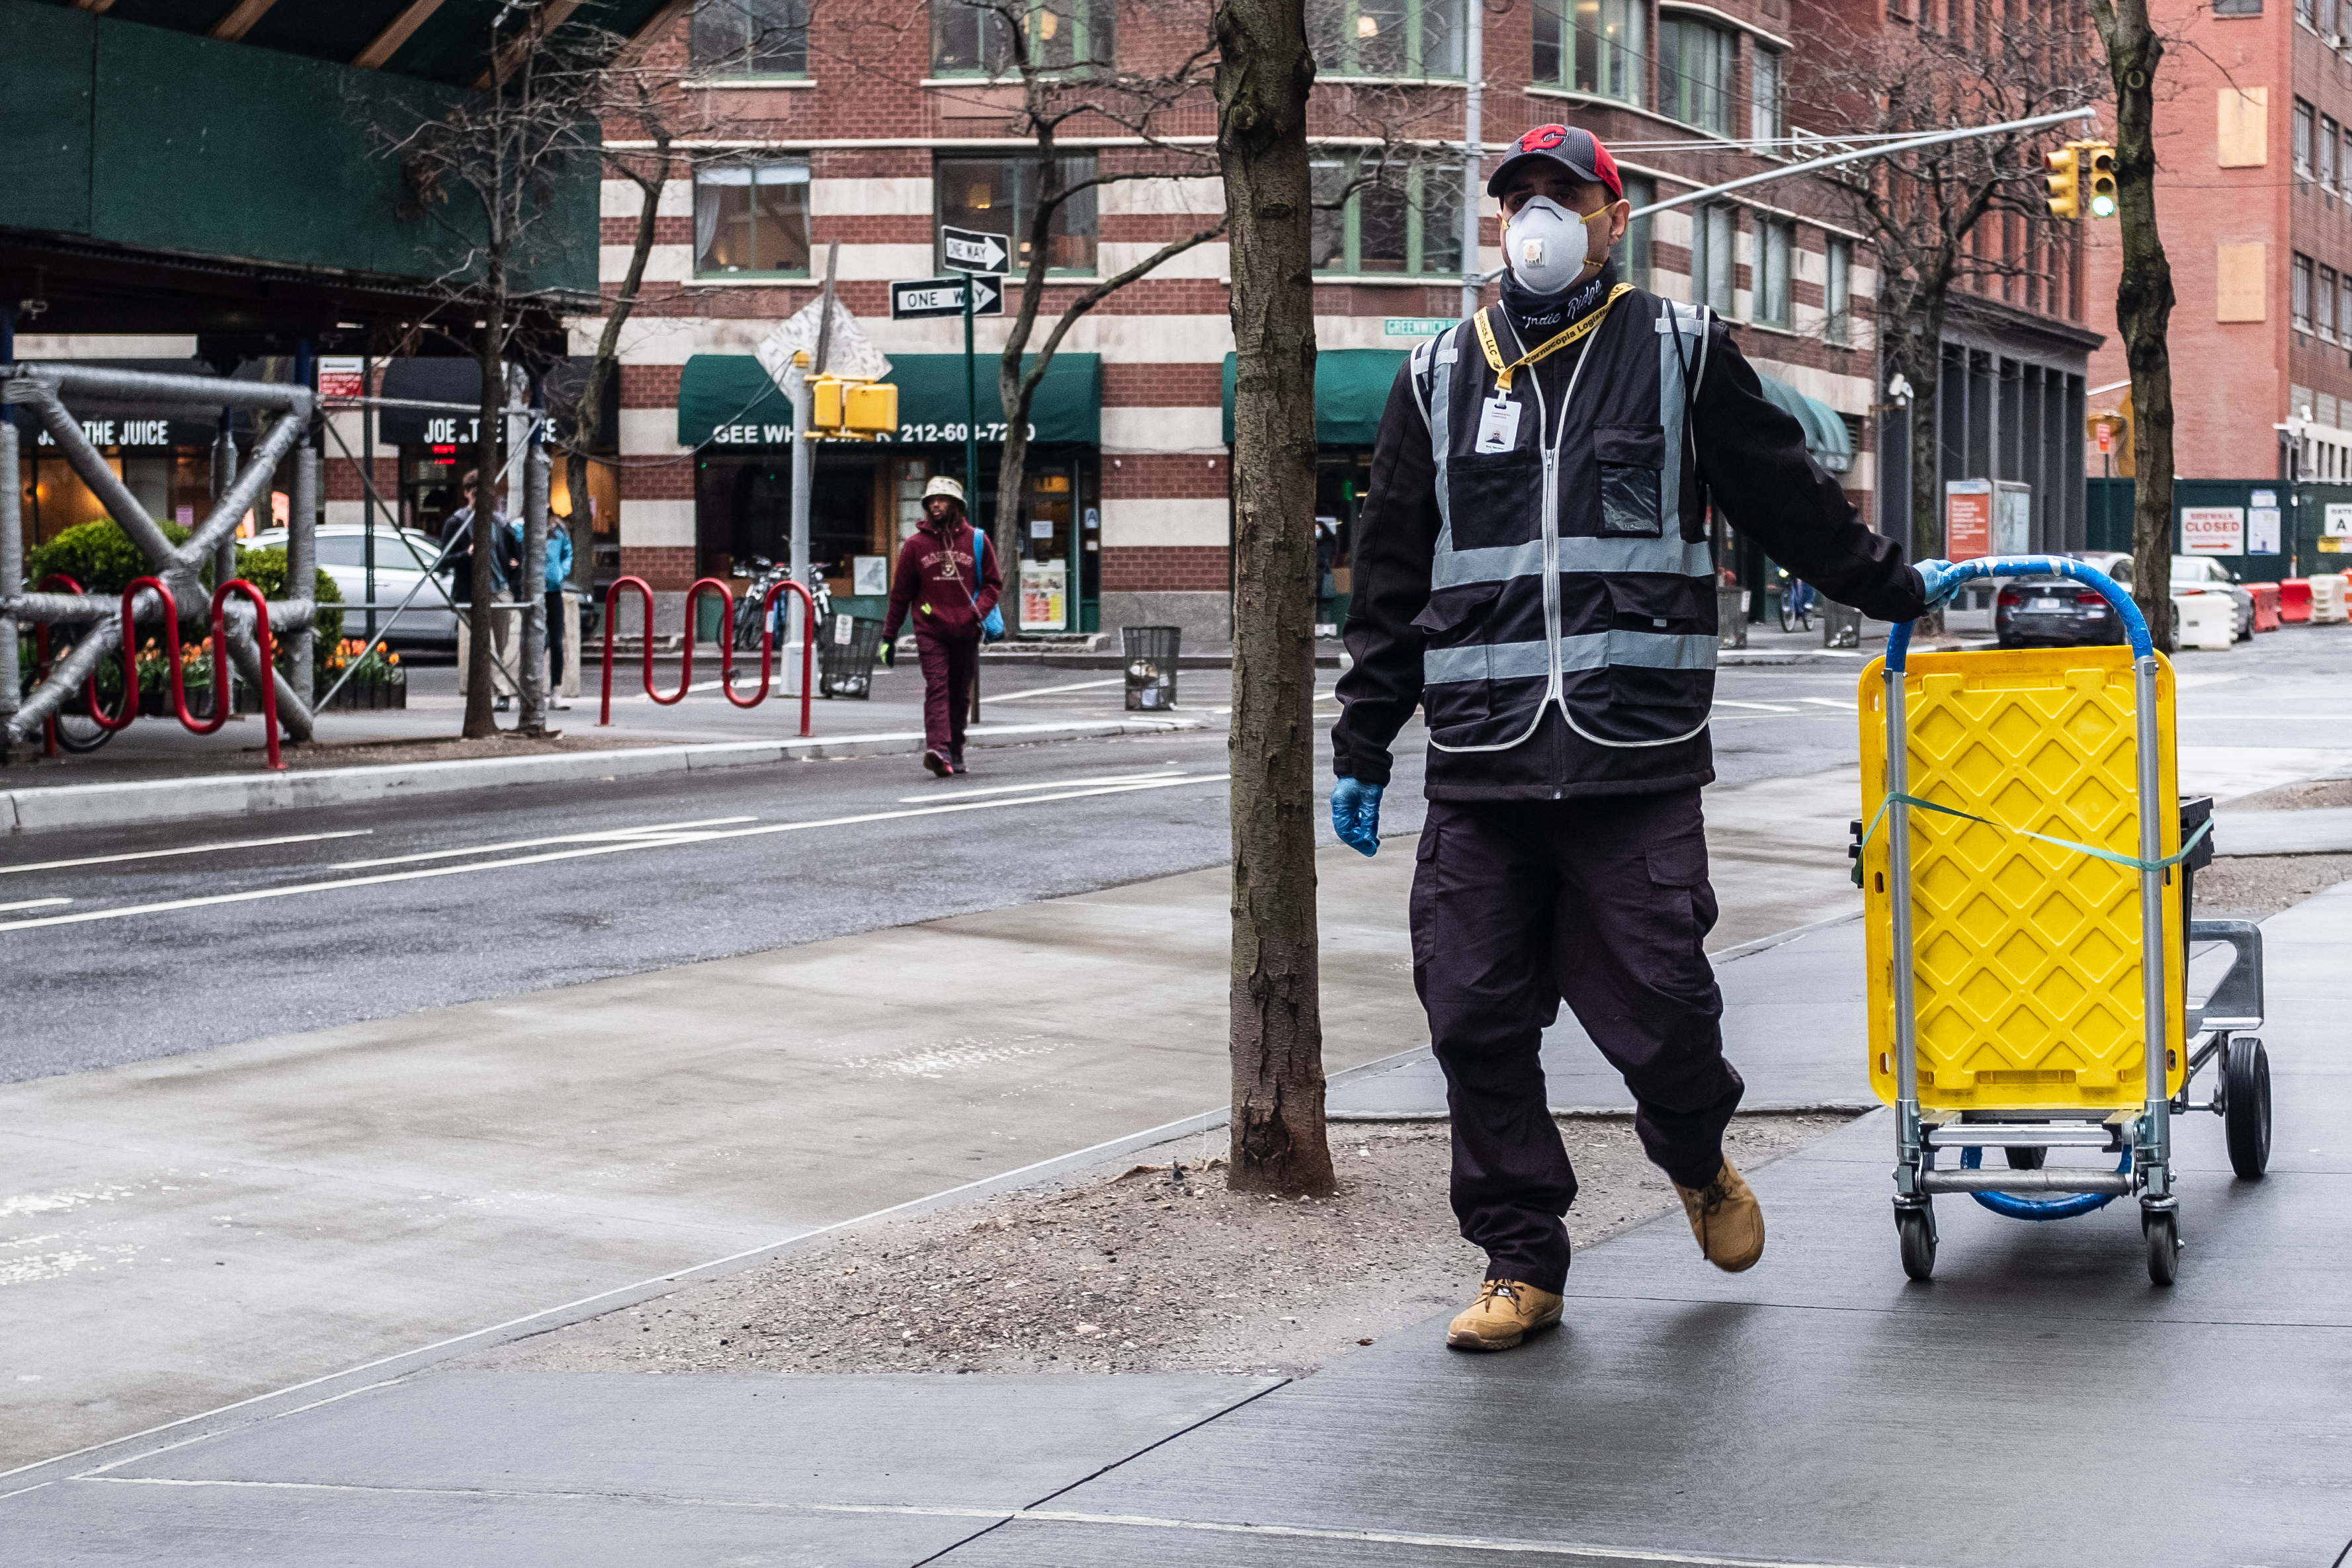 Man wearing a face mask pulls a cart while walking on the sidewalk in New York.